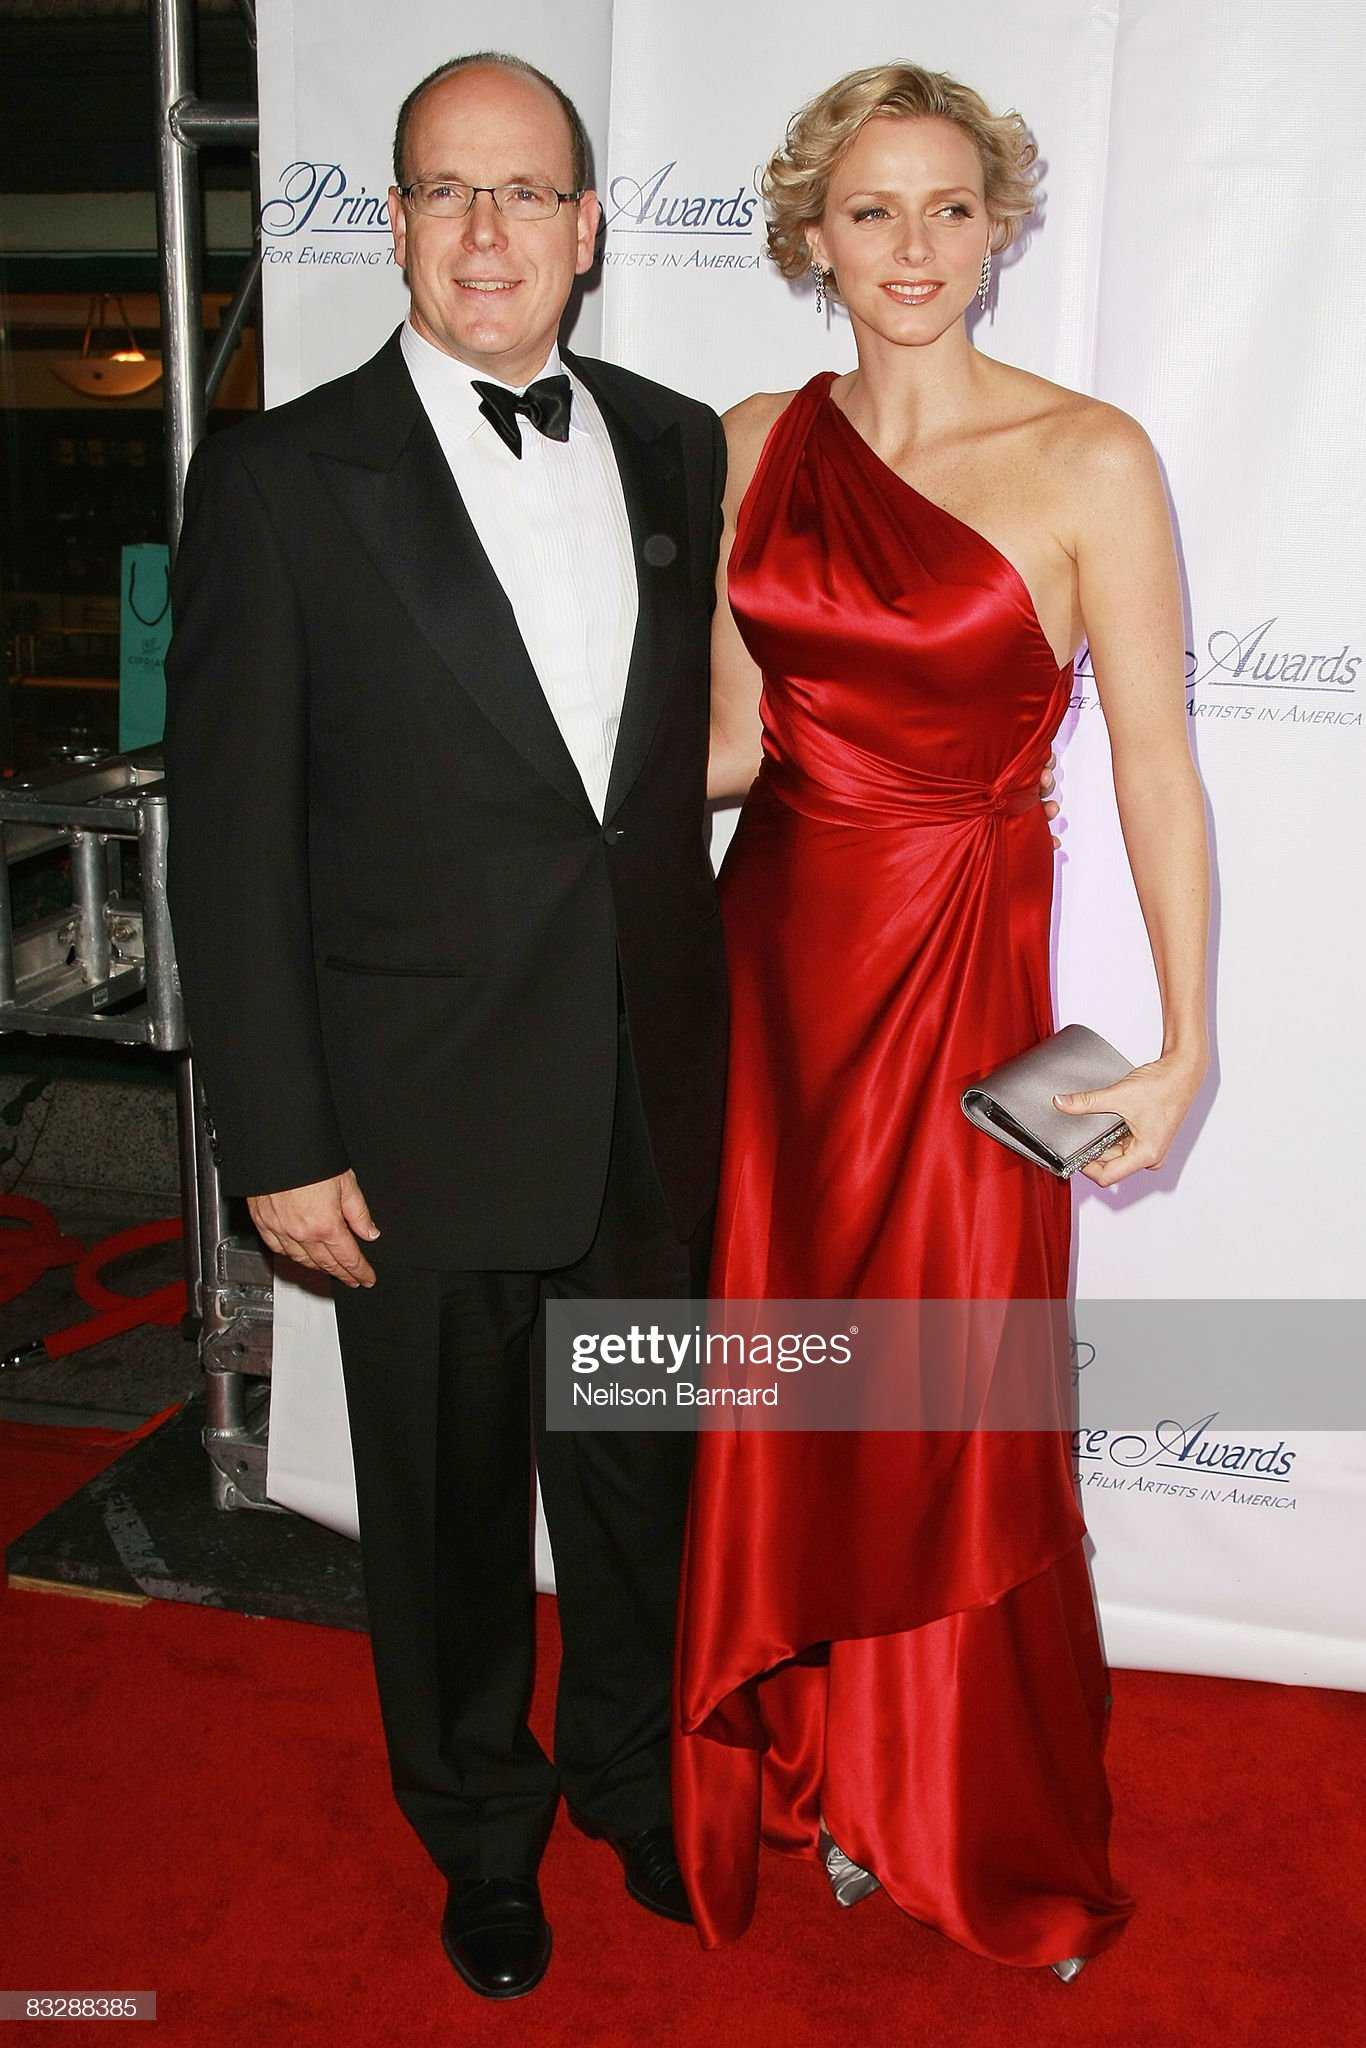 The Princess Grace Awards Gala 2008 : News Photo